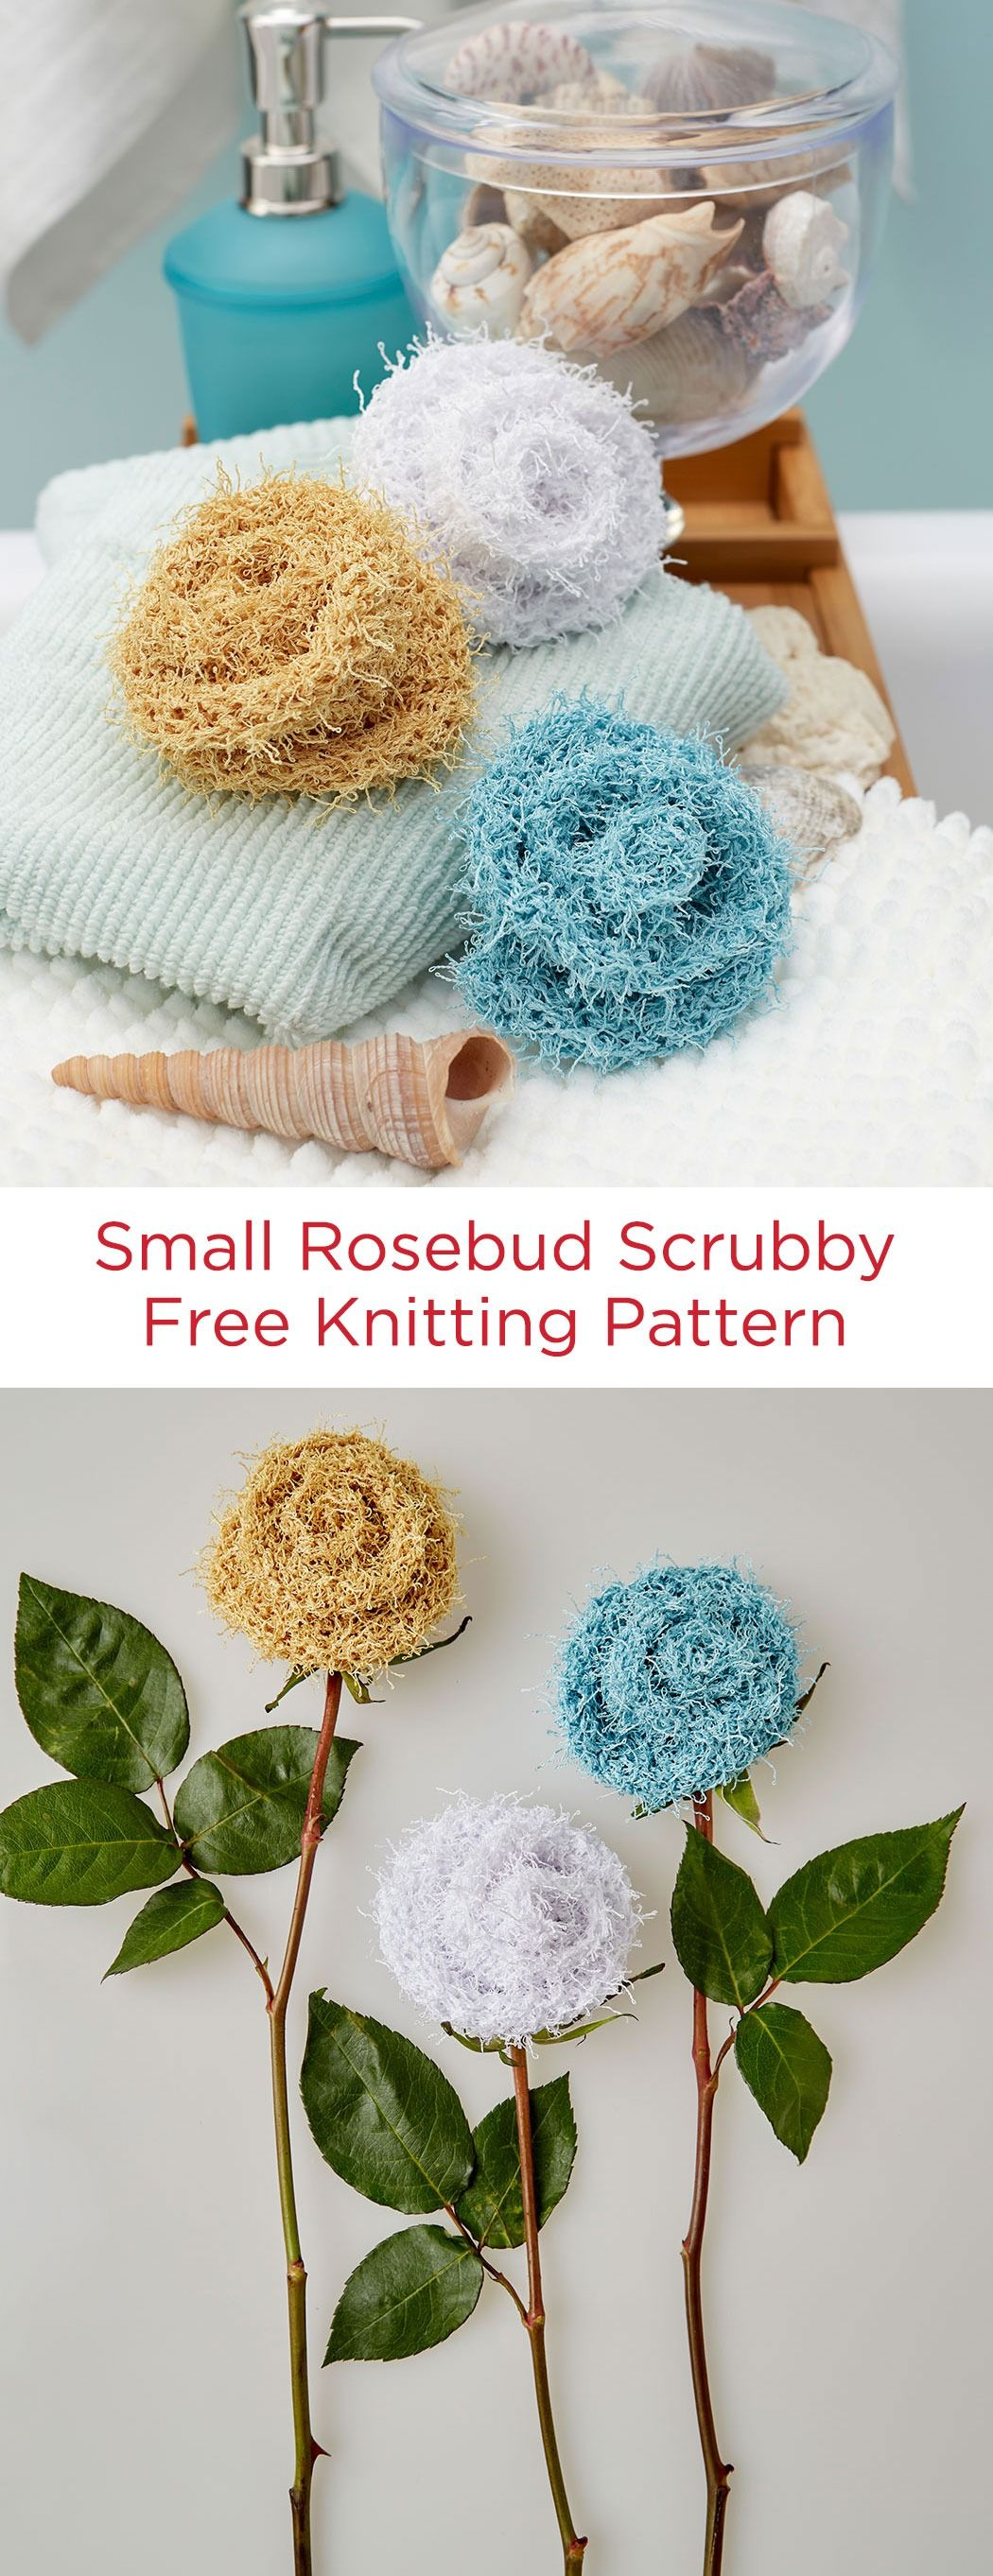 Small Rosebud Scrubby Free Knitting Pattern in Red Heart Scrubby ...